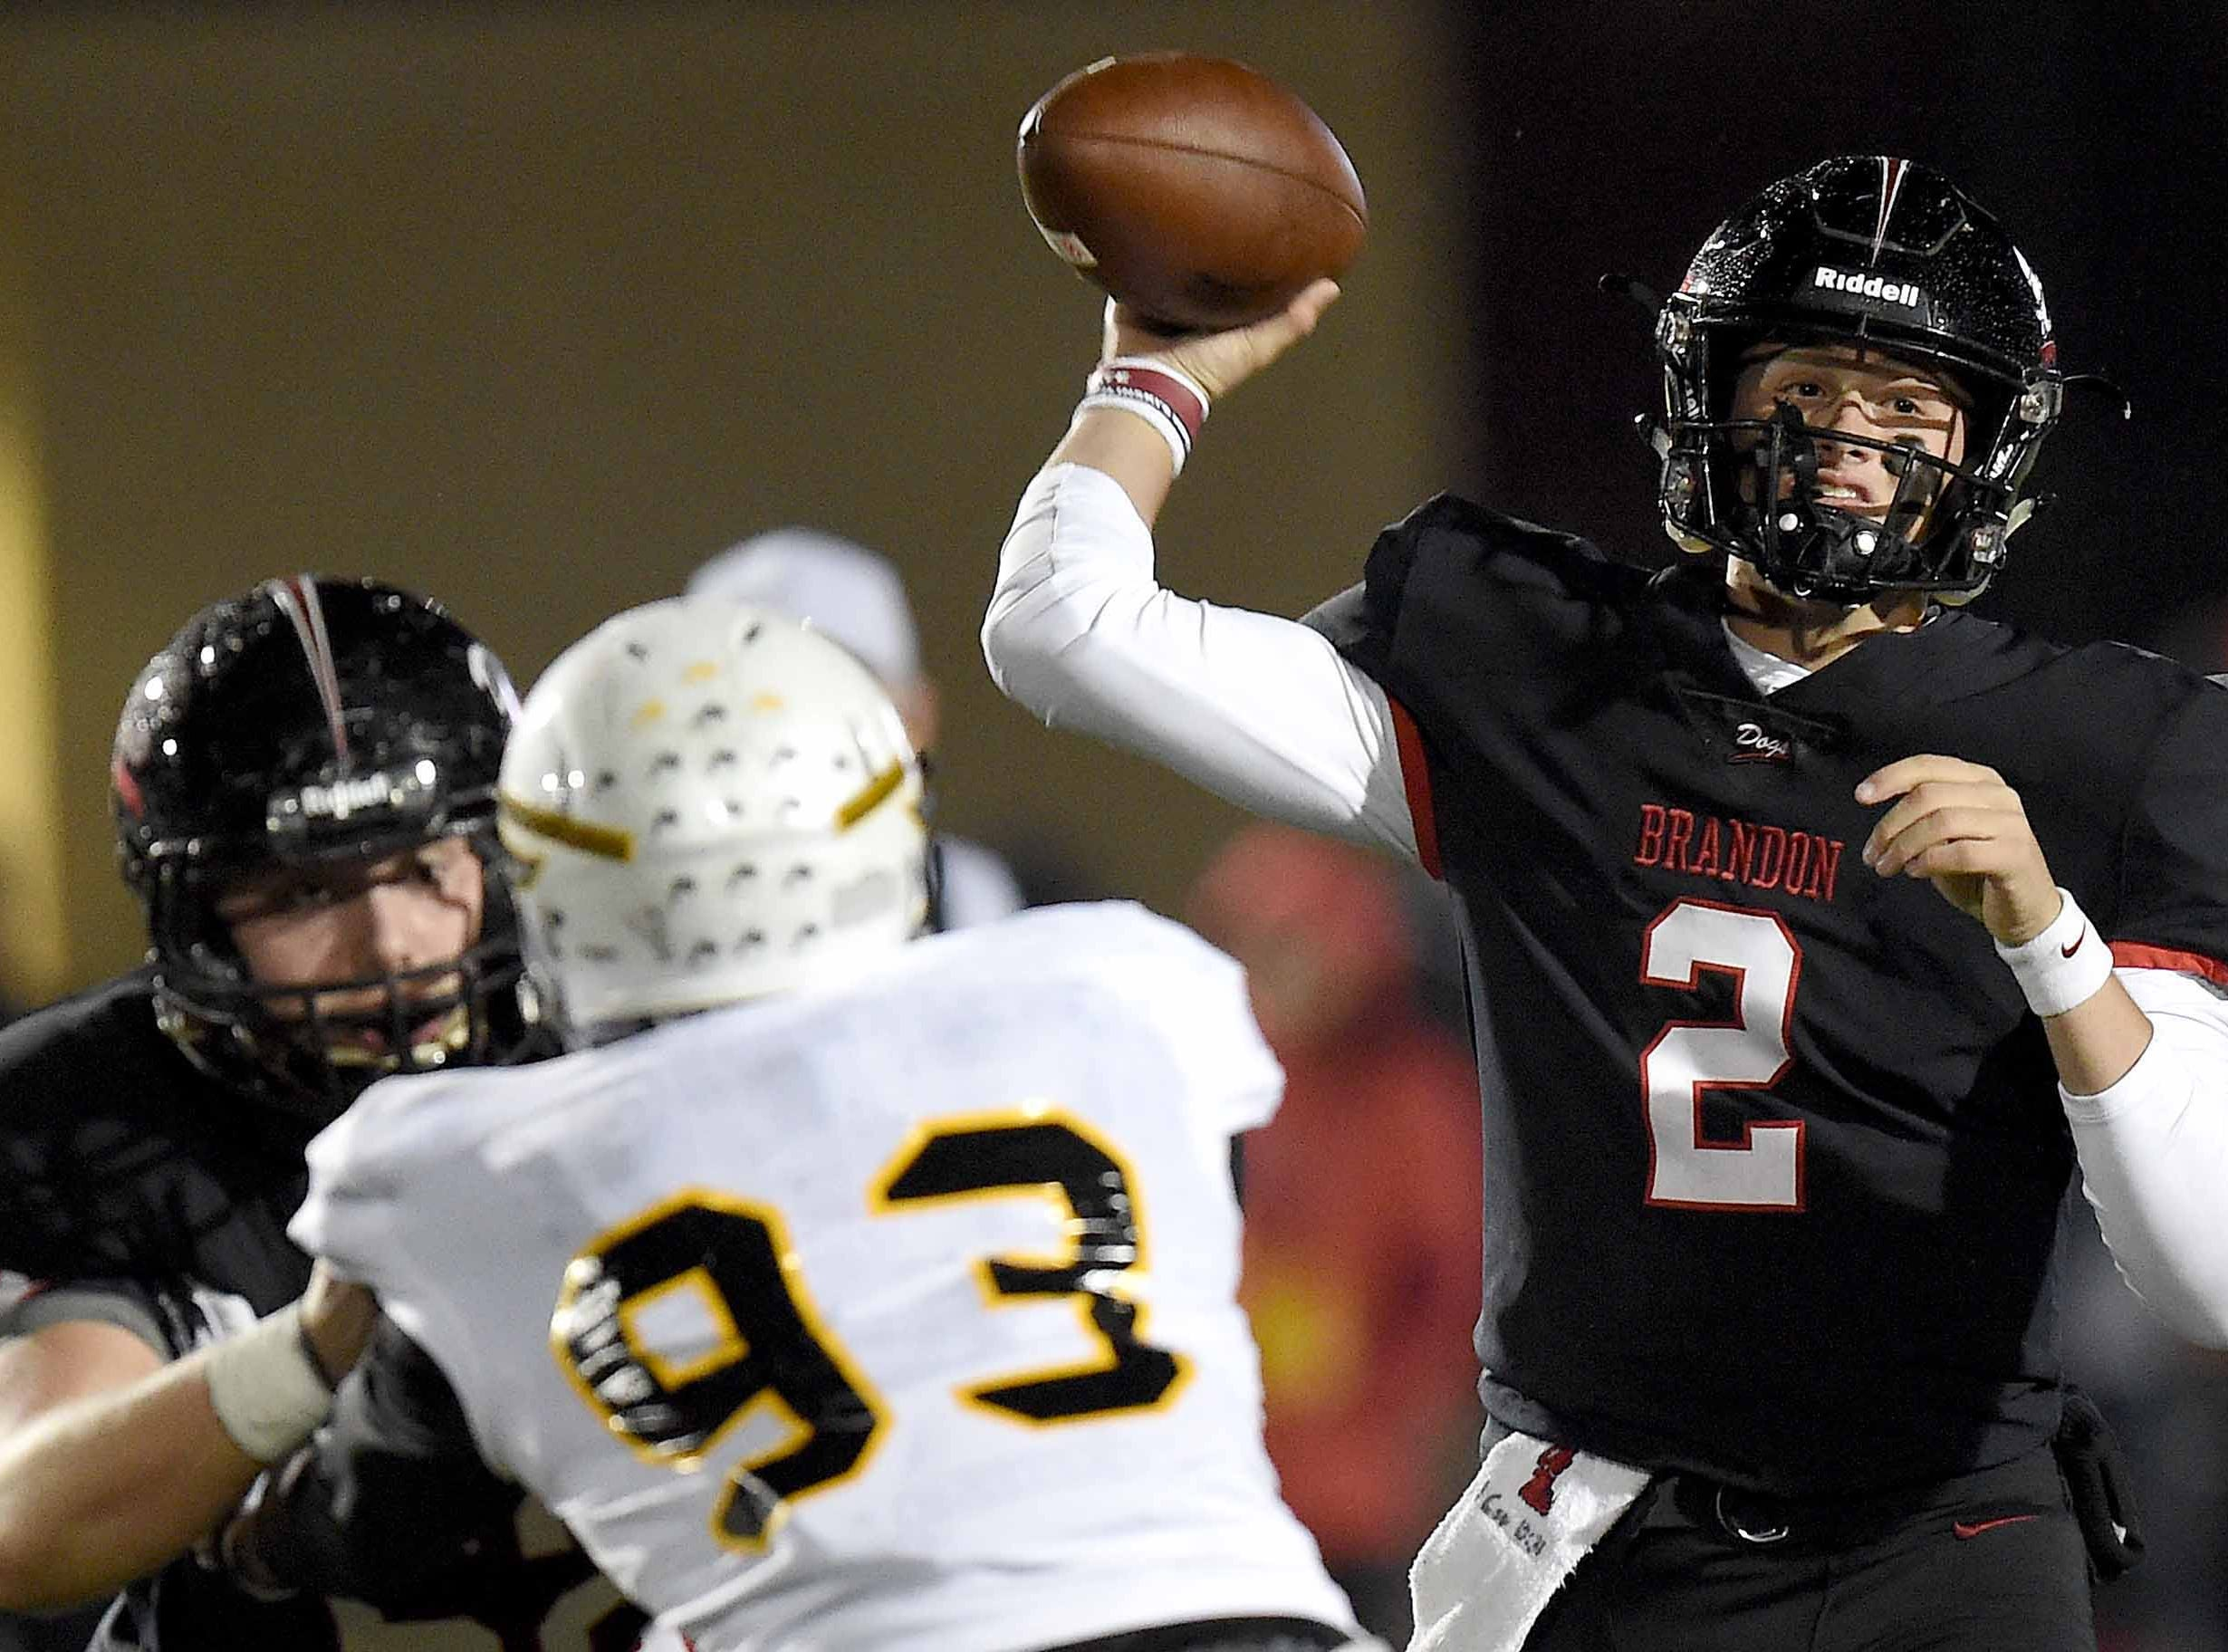 Brandon quarterback Will Rogers (2) throws over the Oak Grove pass rush the MHSAA Class 6A South State Championship on Friday, November 23, 2018, at Brandon High School in Brandon, Miss.